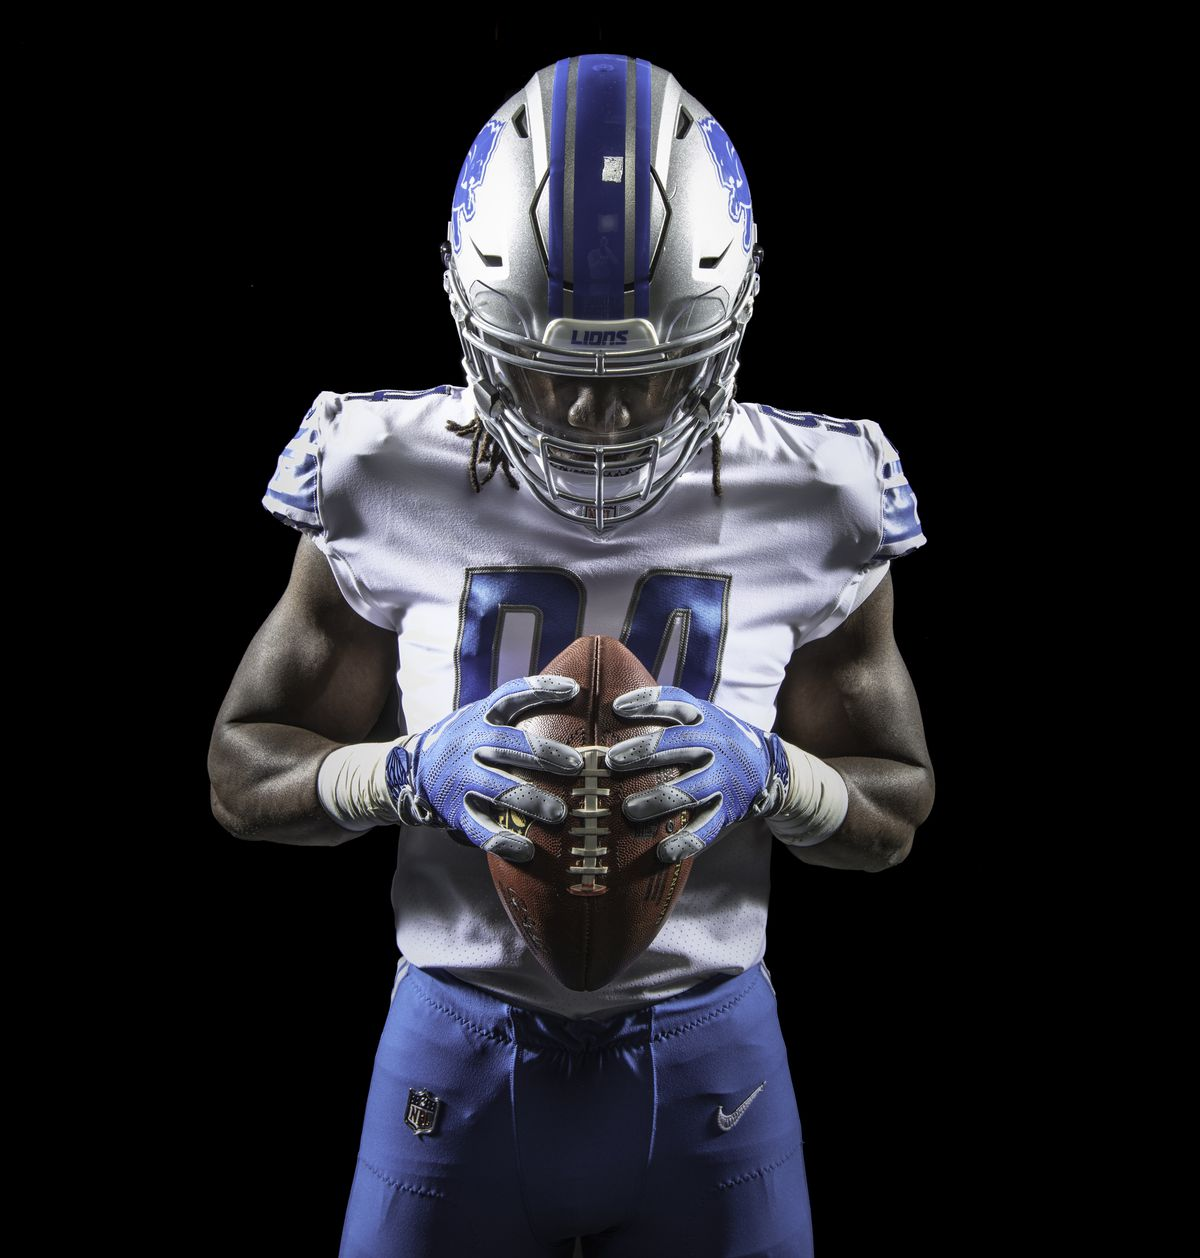 bb42a981 New Lions jersey designed to enhance performance - Pride Of Detroit